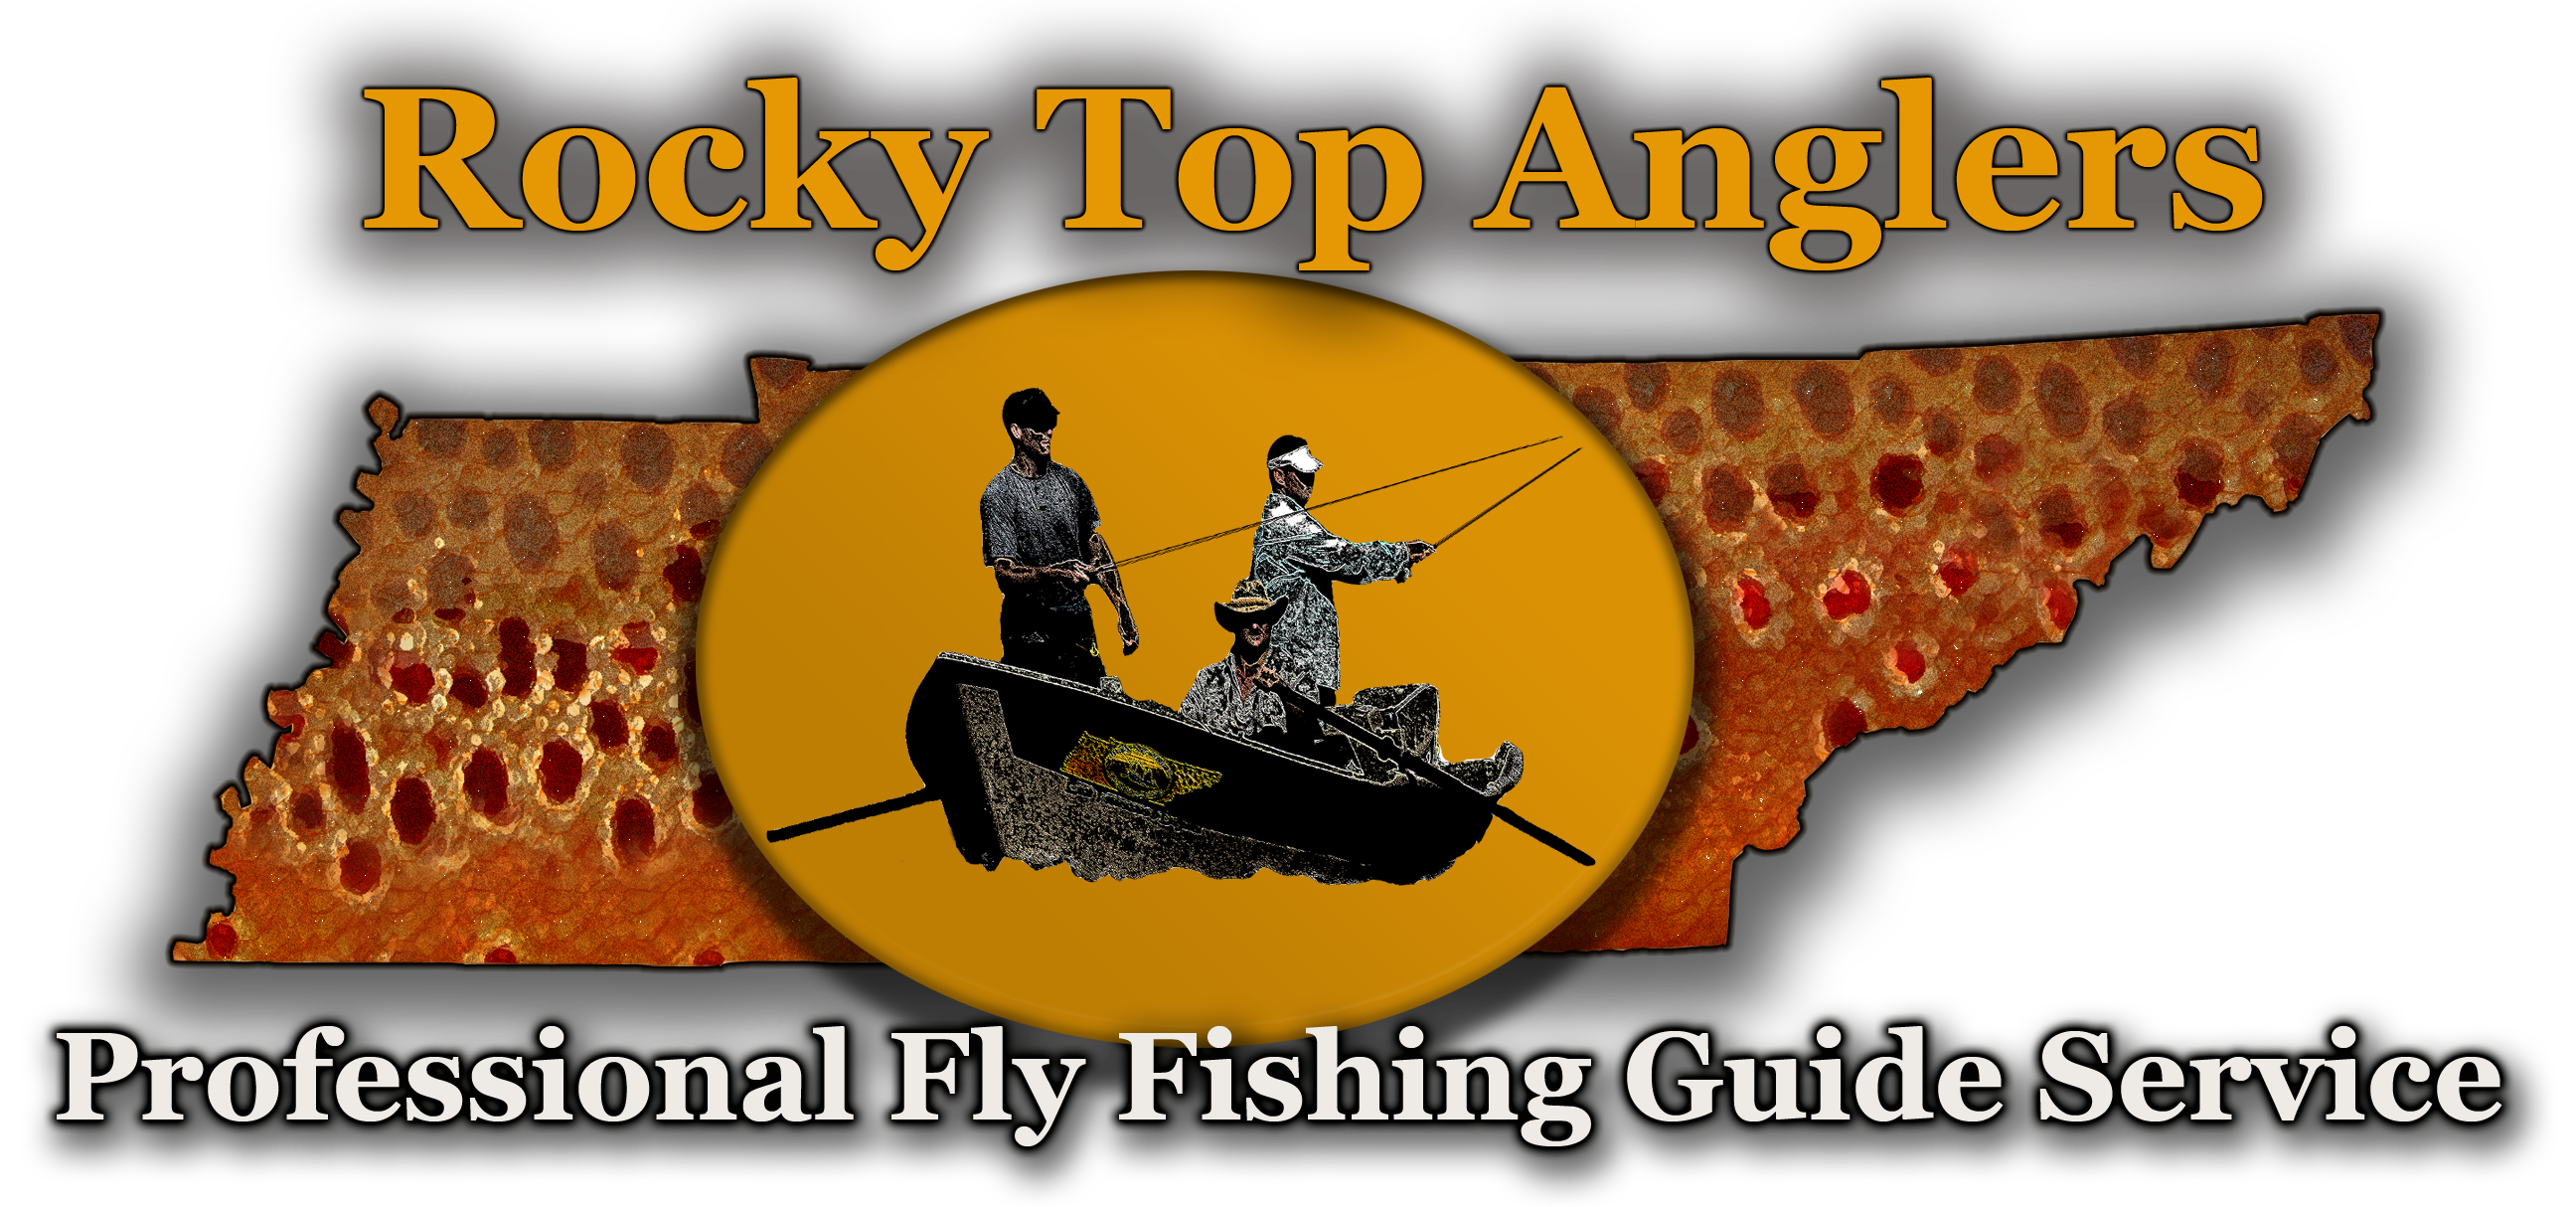 Rocky Top Anglers Tennessee's most popular fly fishing guide service.